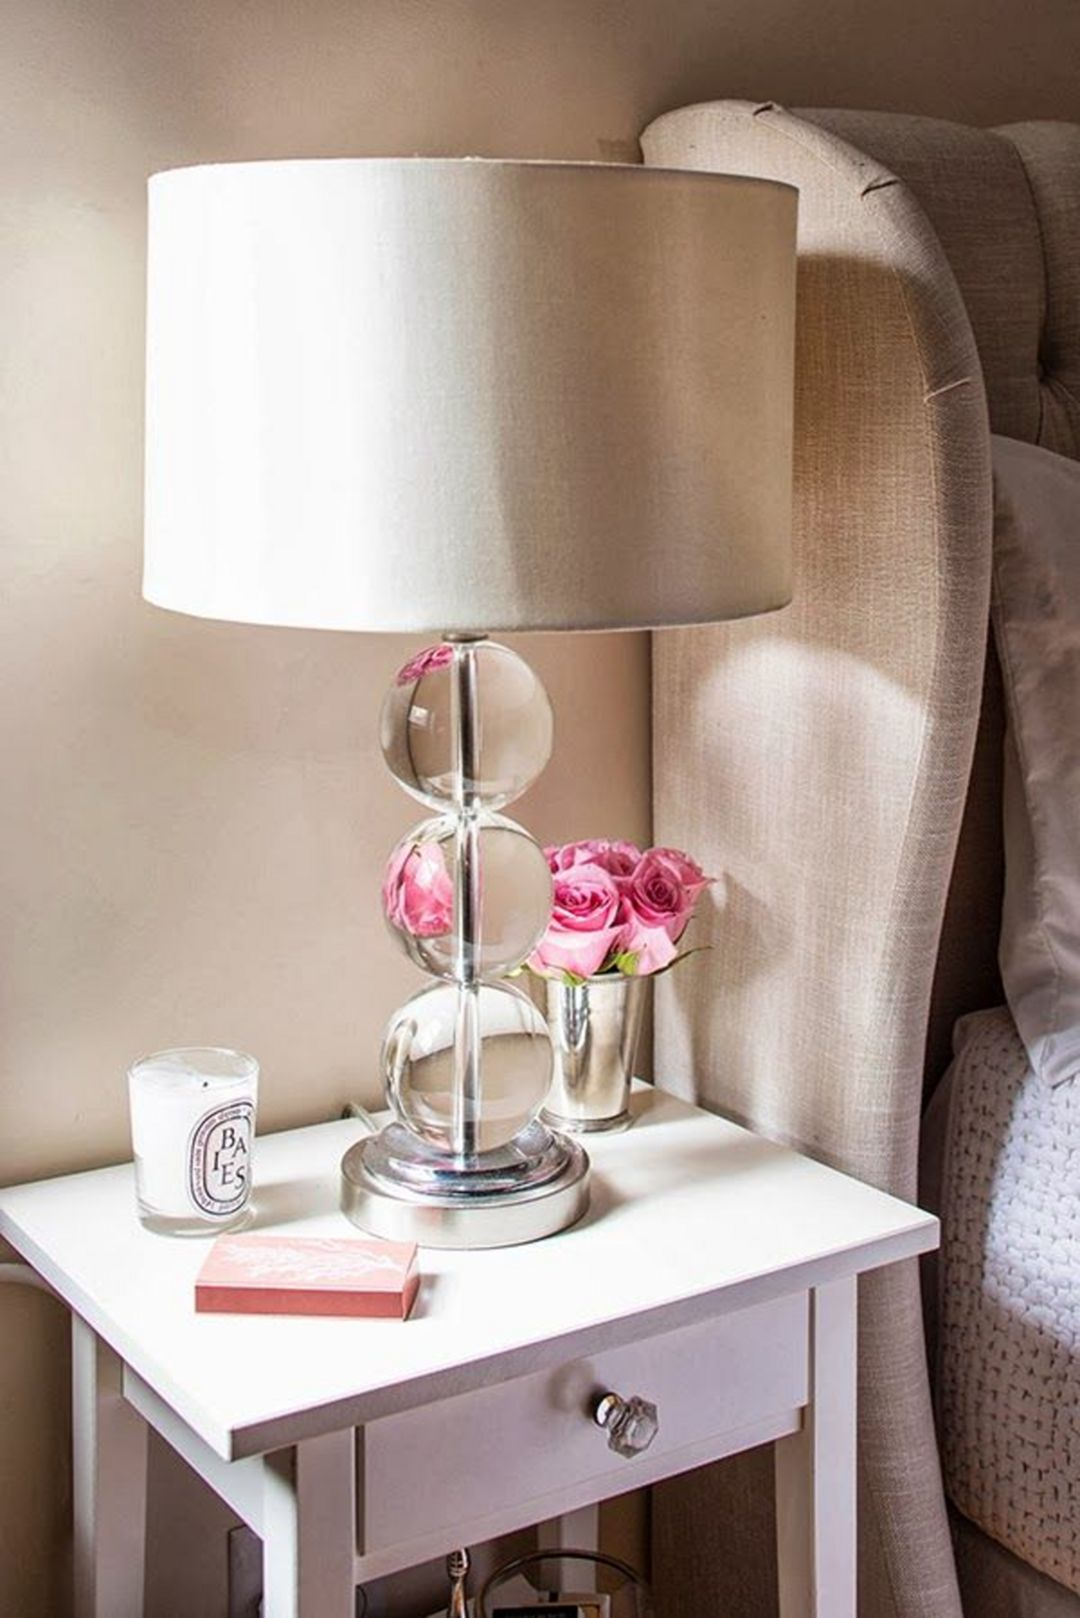 12 Awesome Bedside Table Lamps Ideas To Light Up Your Sleeping Bedside Table Lamps Small Bedside Lamps Vintage Bedside Table